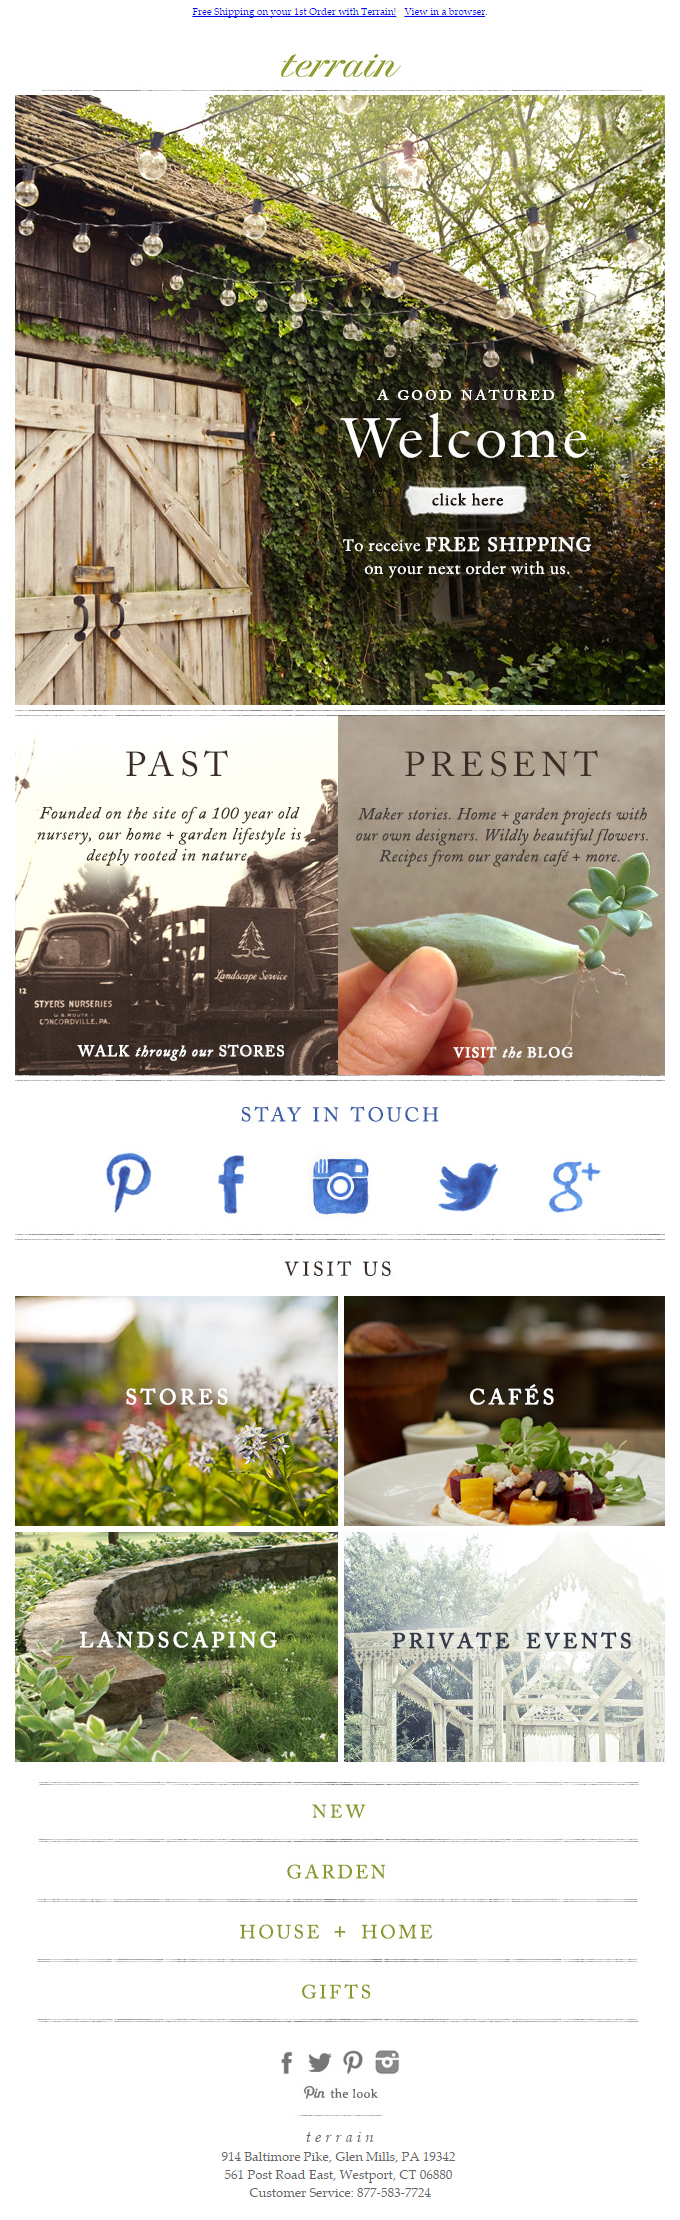 Terrain welcome email 2015 | Emails – Welcome | Pinterest